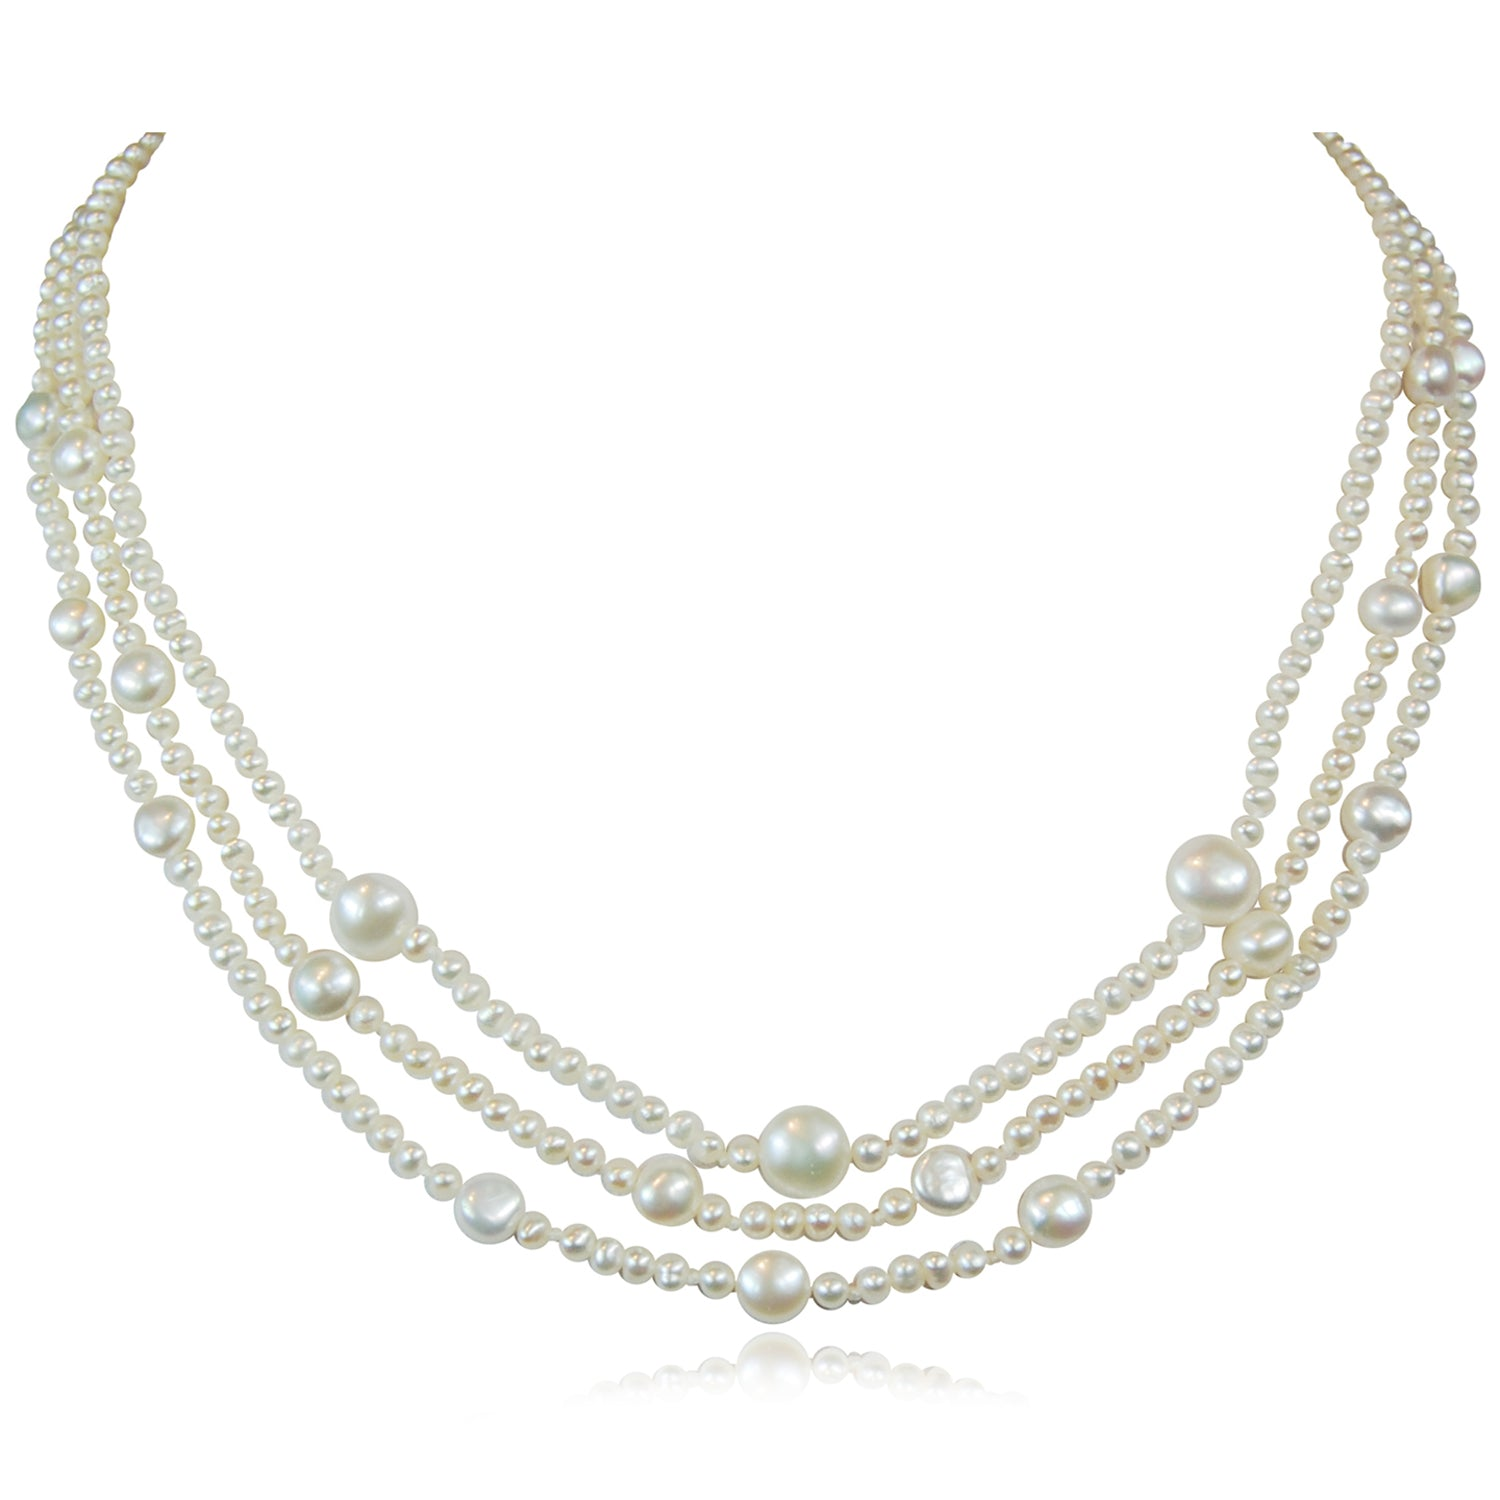 Triple Strand Pearl Spacer Necklace - Limited Edition